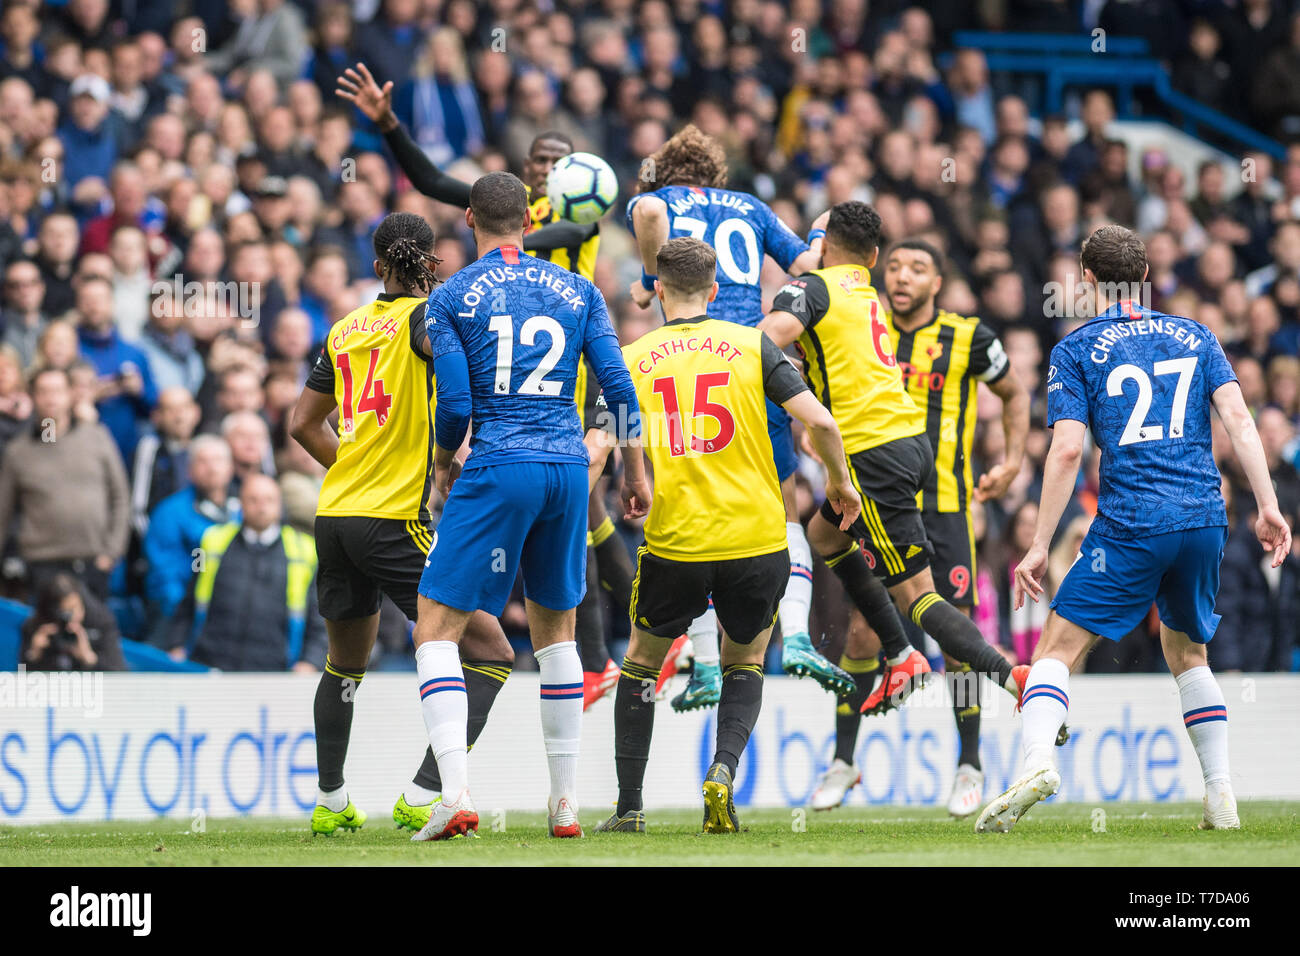 LONDON, ENGLAND - MAY 05: David Luiz of  Chelsea FC scoring goal during the Premier League match between Chelsea FC and Watford FC at Stamford Bridge on May 5, 2019 in London, United Kingdom. (Photo by Sebastian Frej/MB Media/Getty Images) - Stock Image